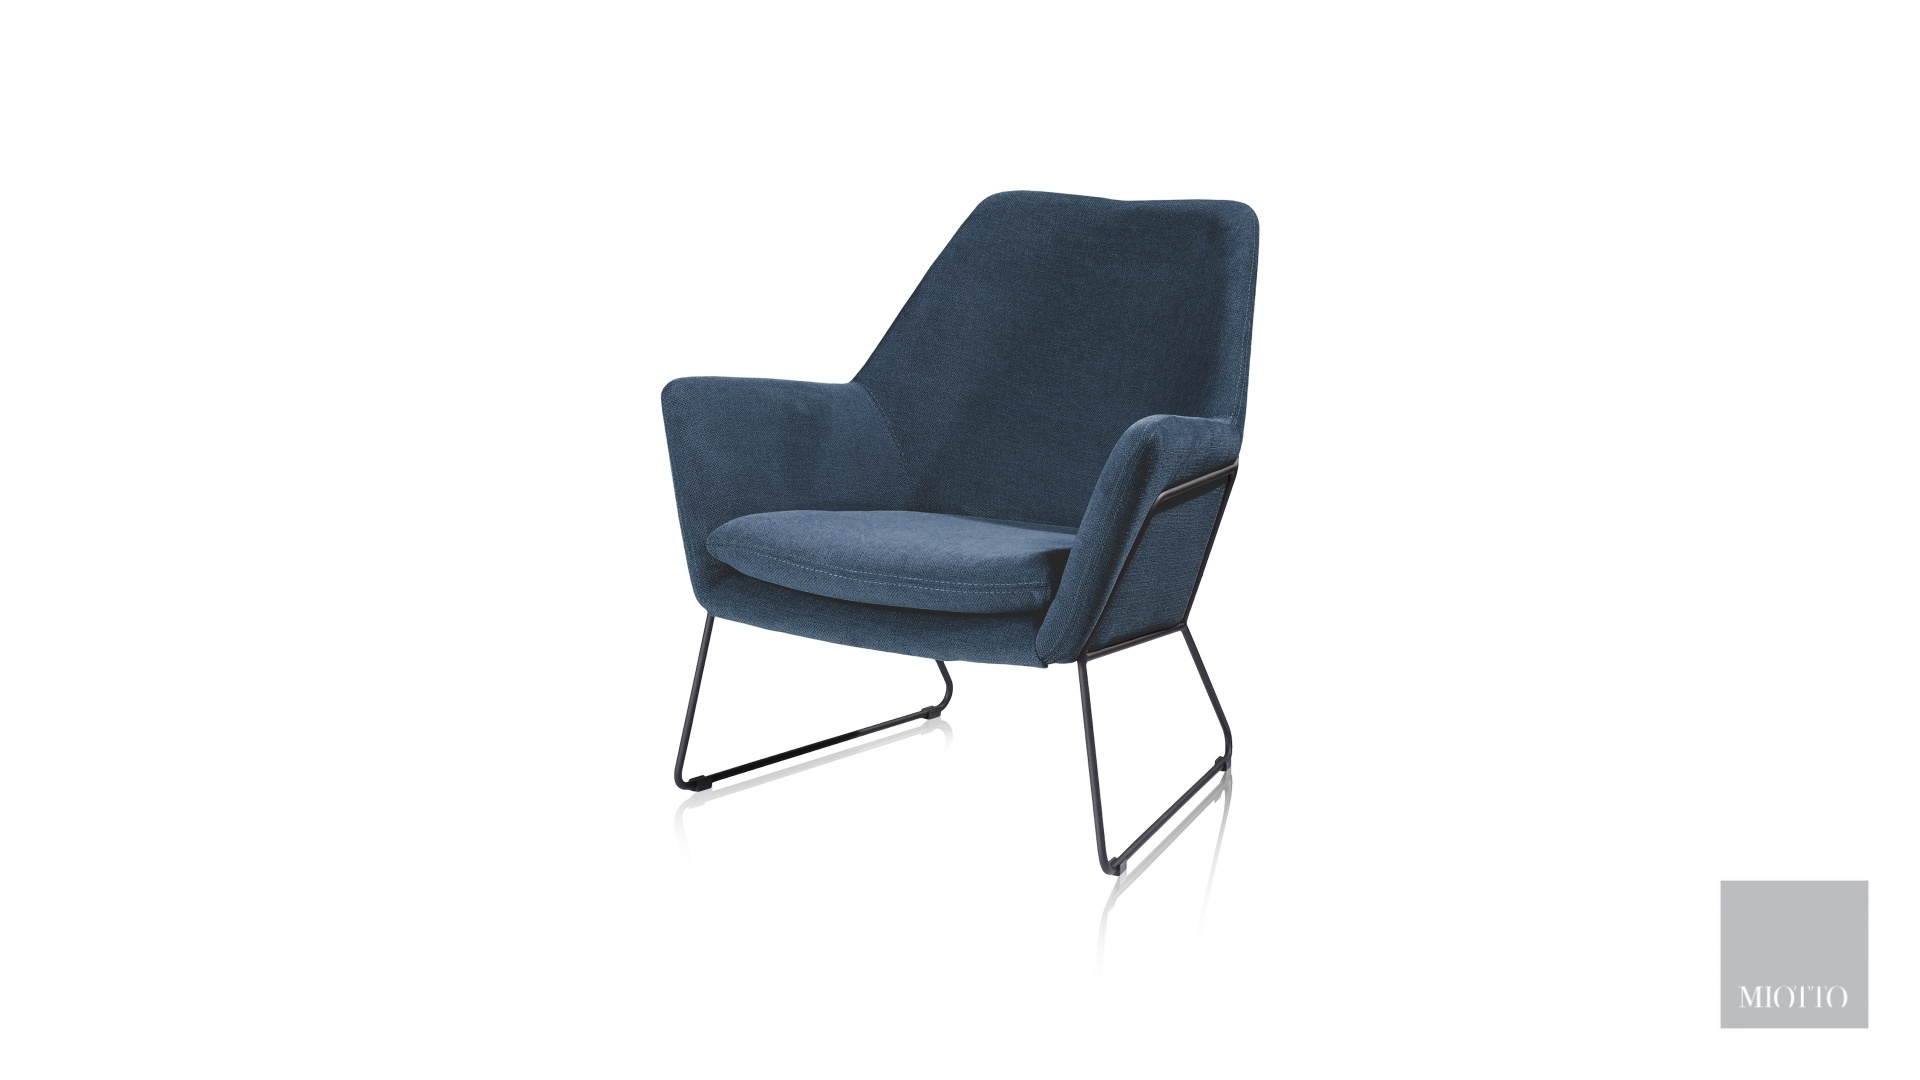 miotto_Duomo leisure chair blue